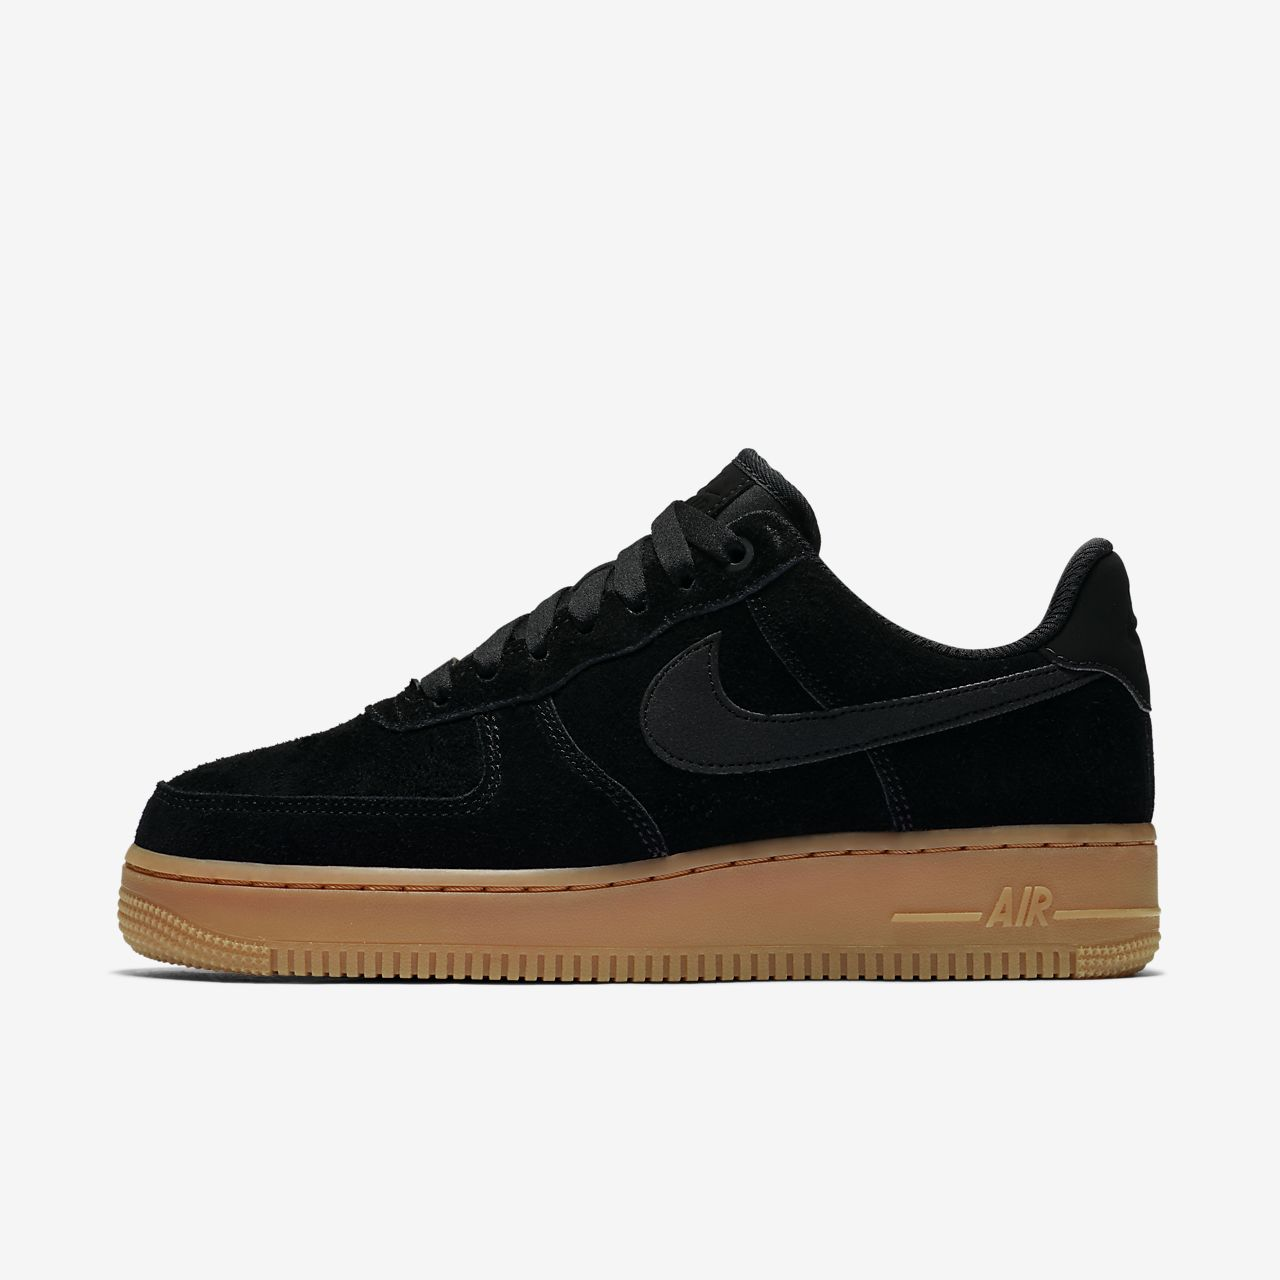 official photos 78ab0 a6217 ... Chaussure Nike Air Force 1 07 SE Suede pour Femme